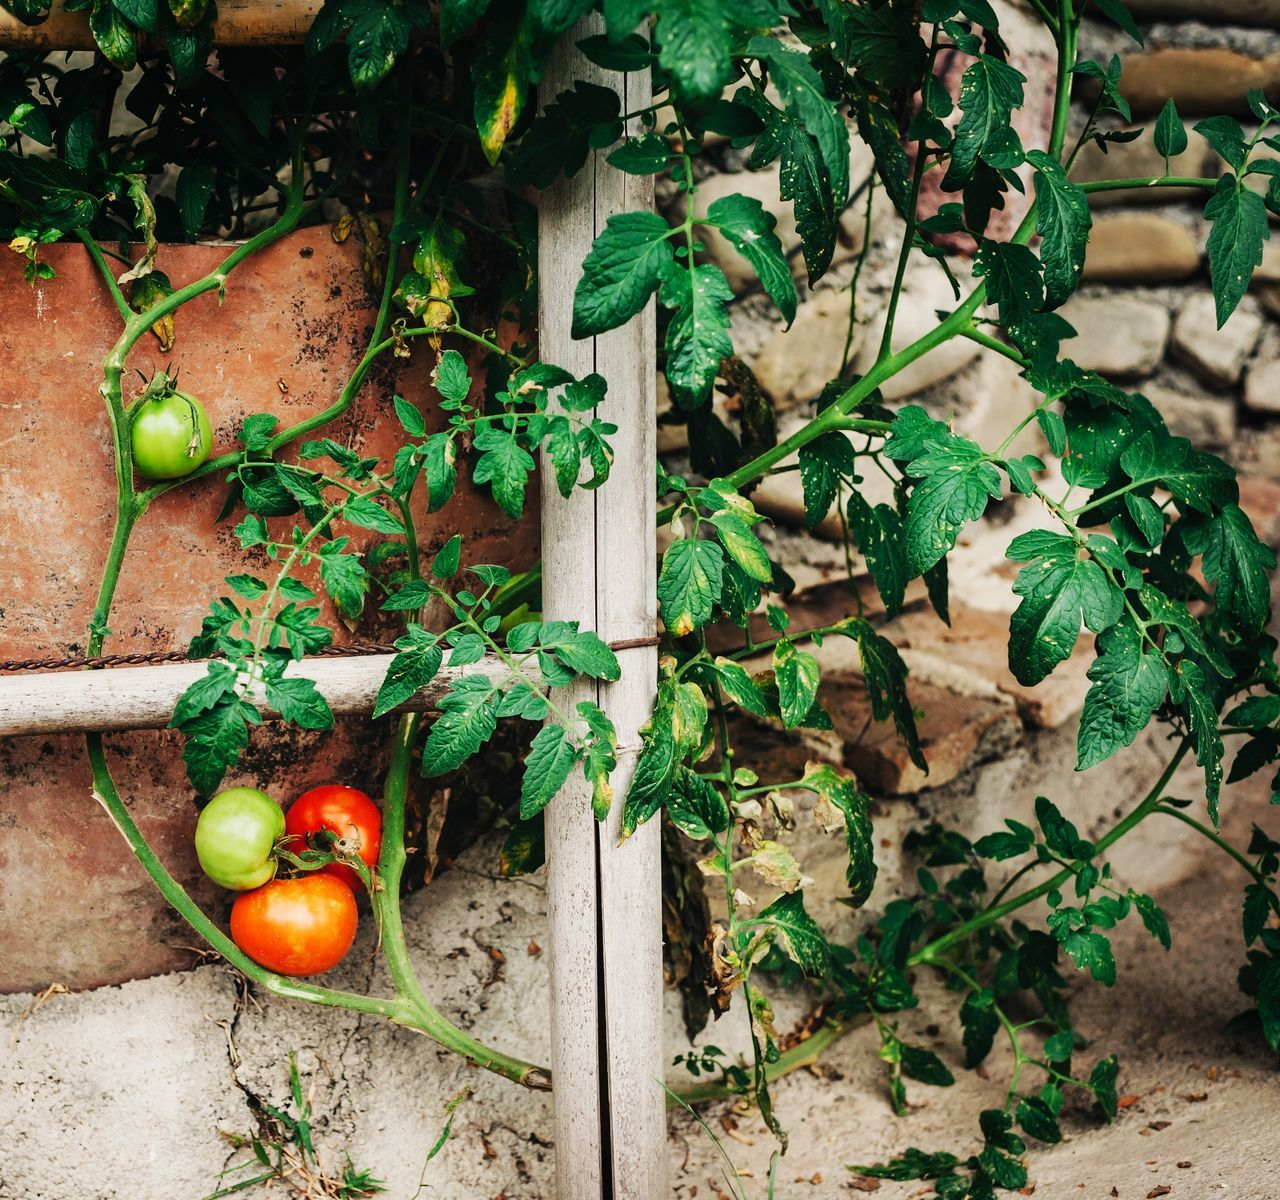 Tomatoes Tomato Leaf Green Color No People Growth Fruit Healthy Eating Plant Food And Drink High Angle View Branch Tree Nature Day Freshness Christmas Decoration Outdoors Close-up Horizontal